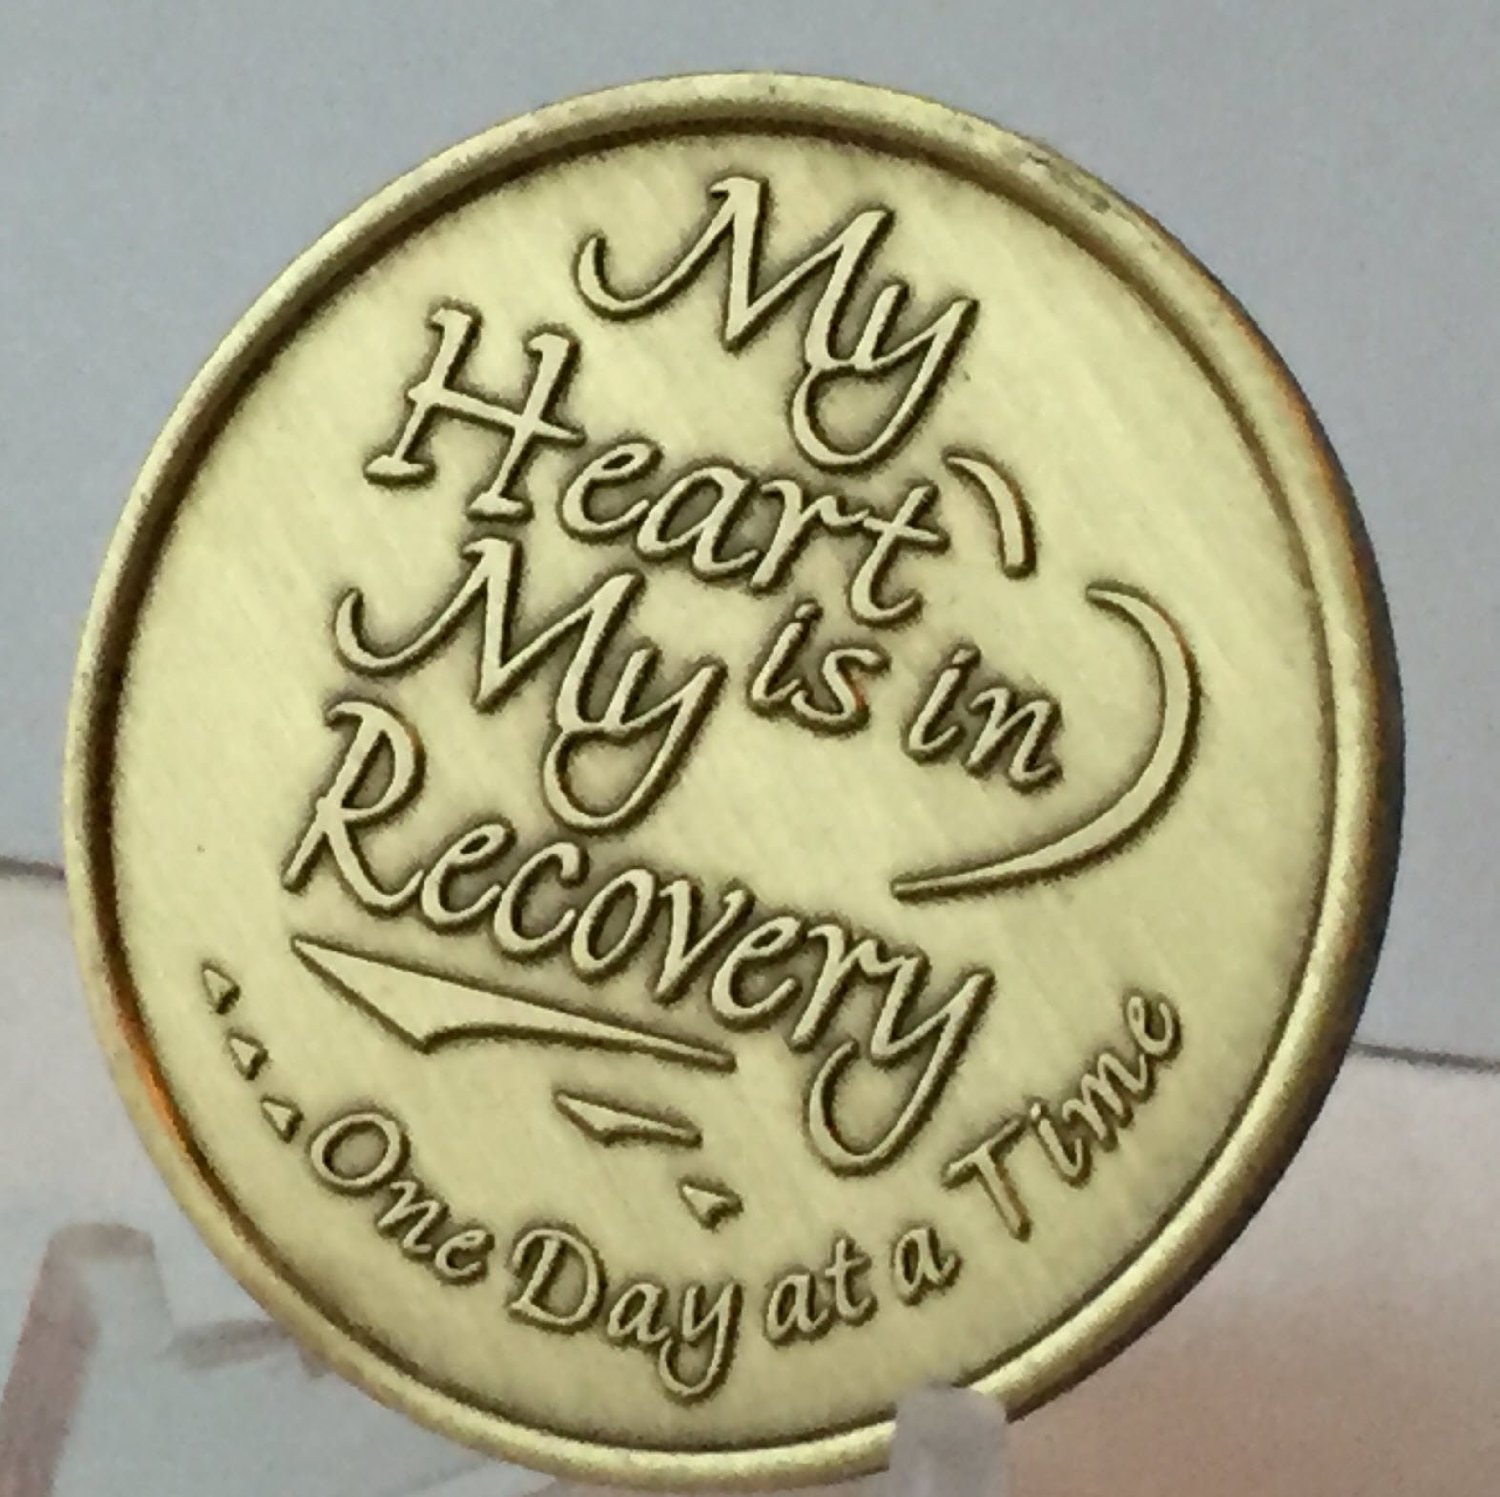 My Heart Is In Recovery Bulk Lot of 25 Medallions Bronze One Day At A Time Chips by wendells (Image #3)